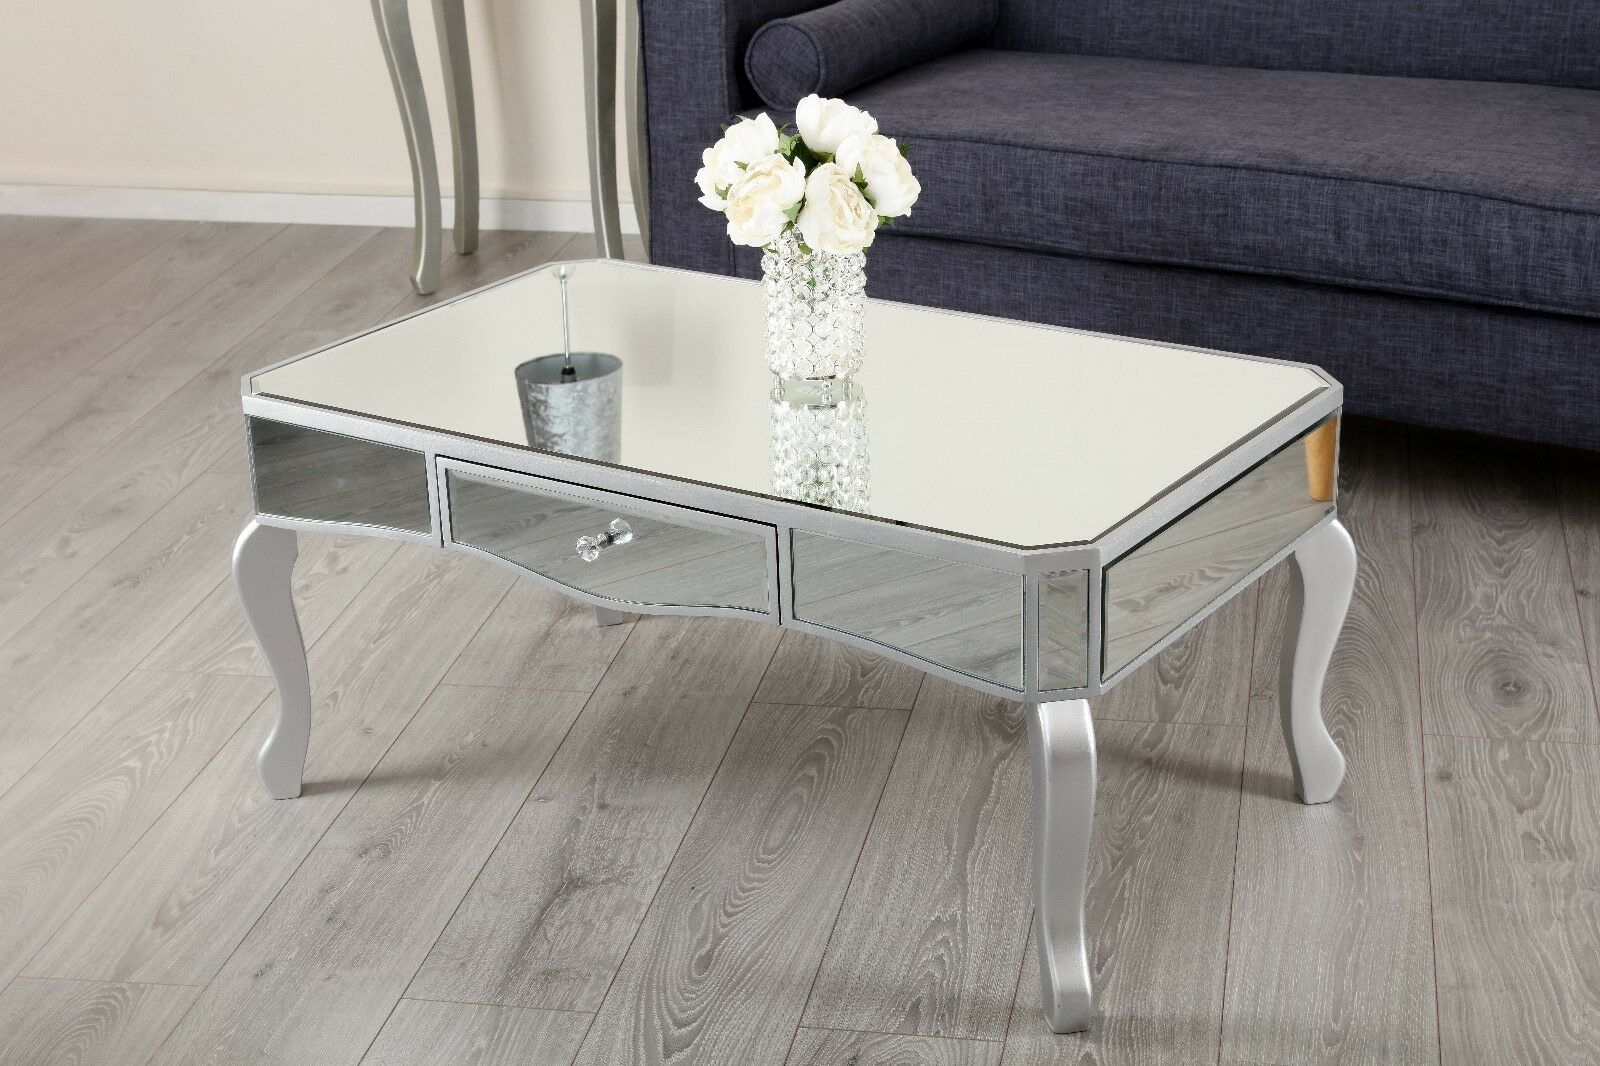 Add Elegance To Any Room With This Silver Mirrored Coffee Table Its Crystal Handles And Shiny Finish Piece Is Perfect Brighten Up